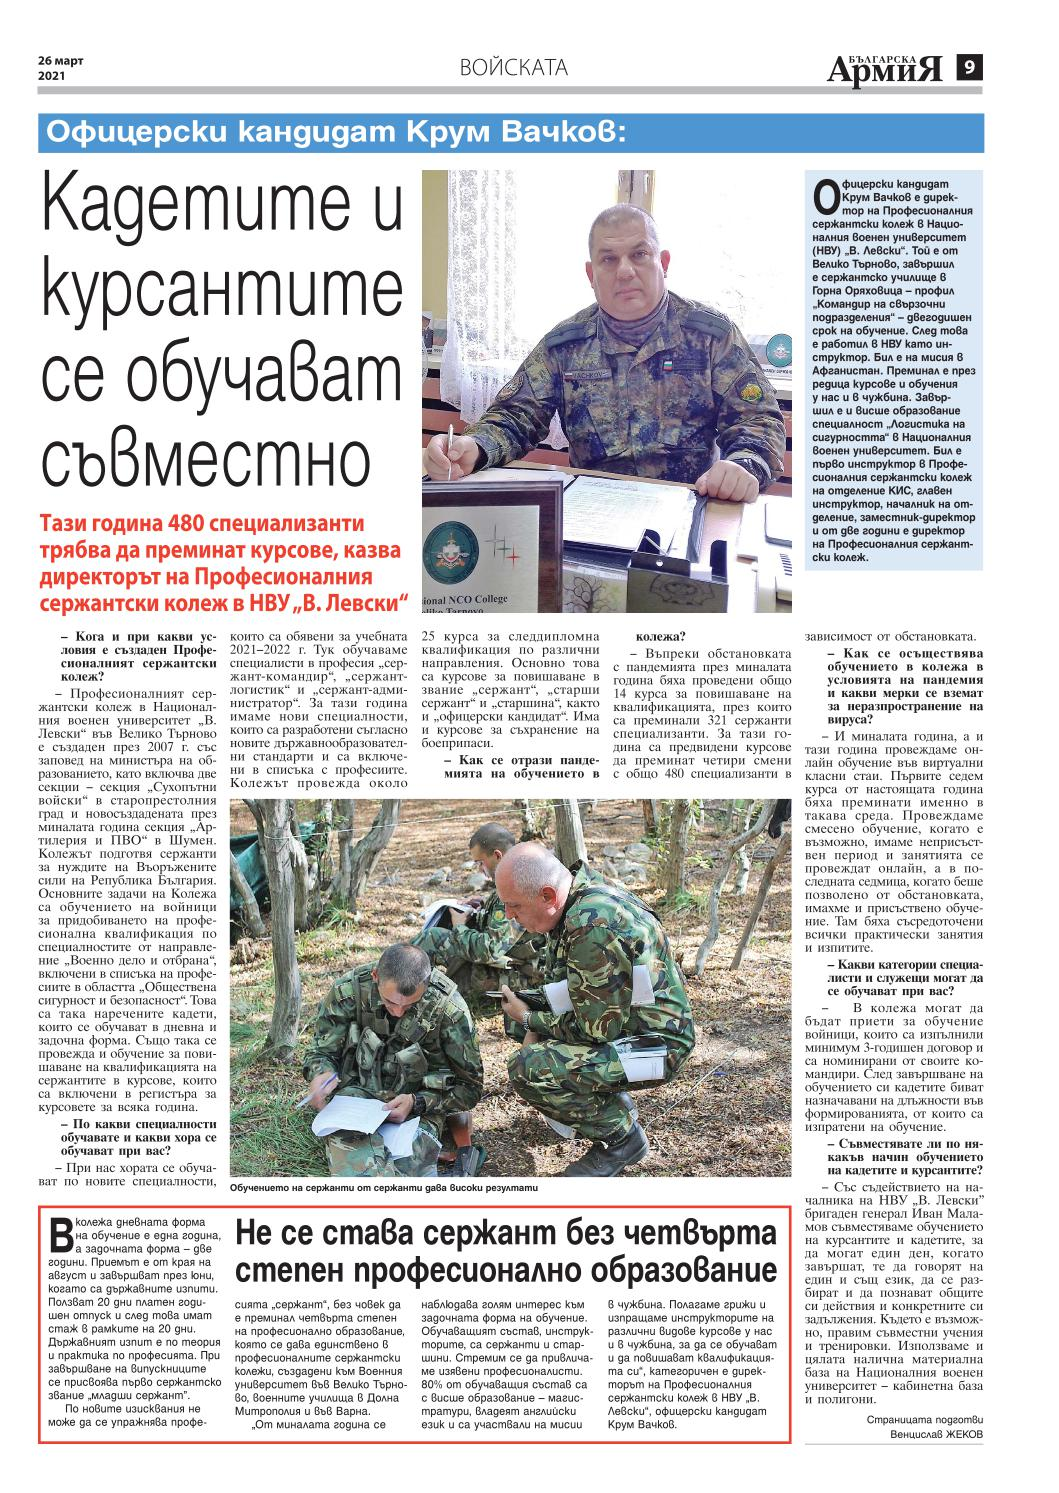 https://armymedia.bg/wp-content/uploads/2021/03/09.page1_-154.jpg